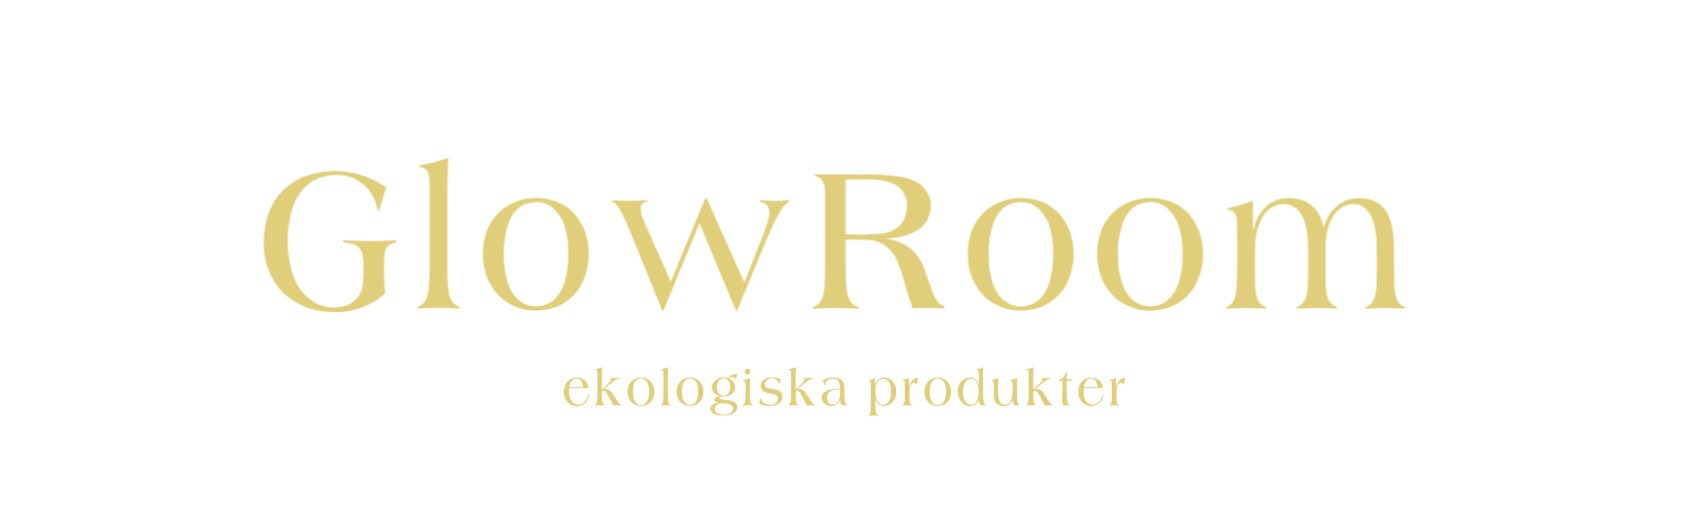 glowroom vit (2)